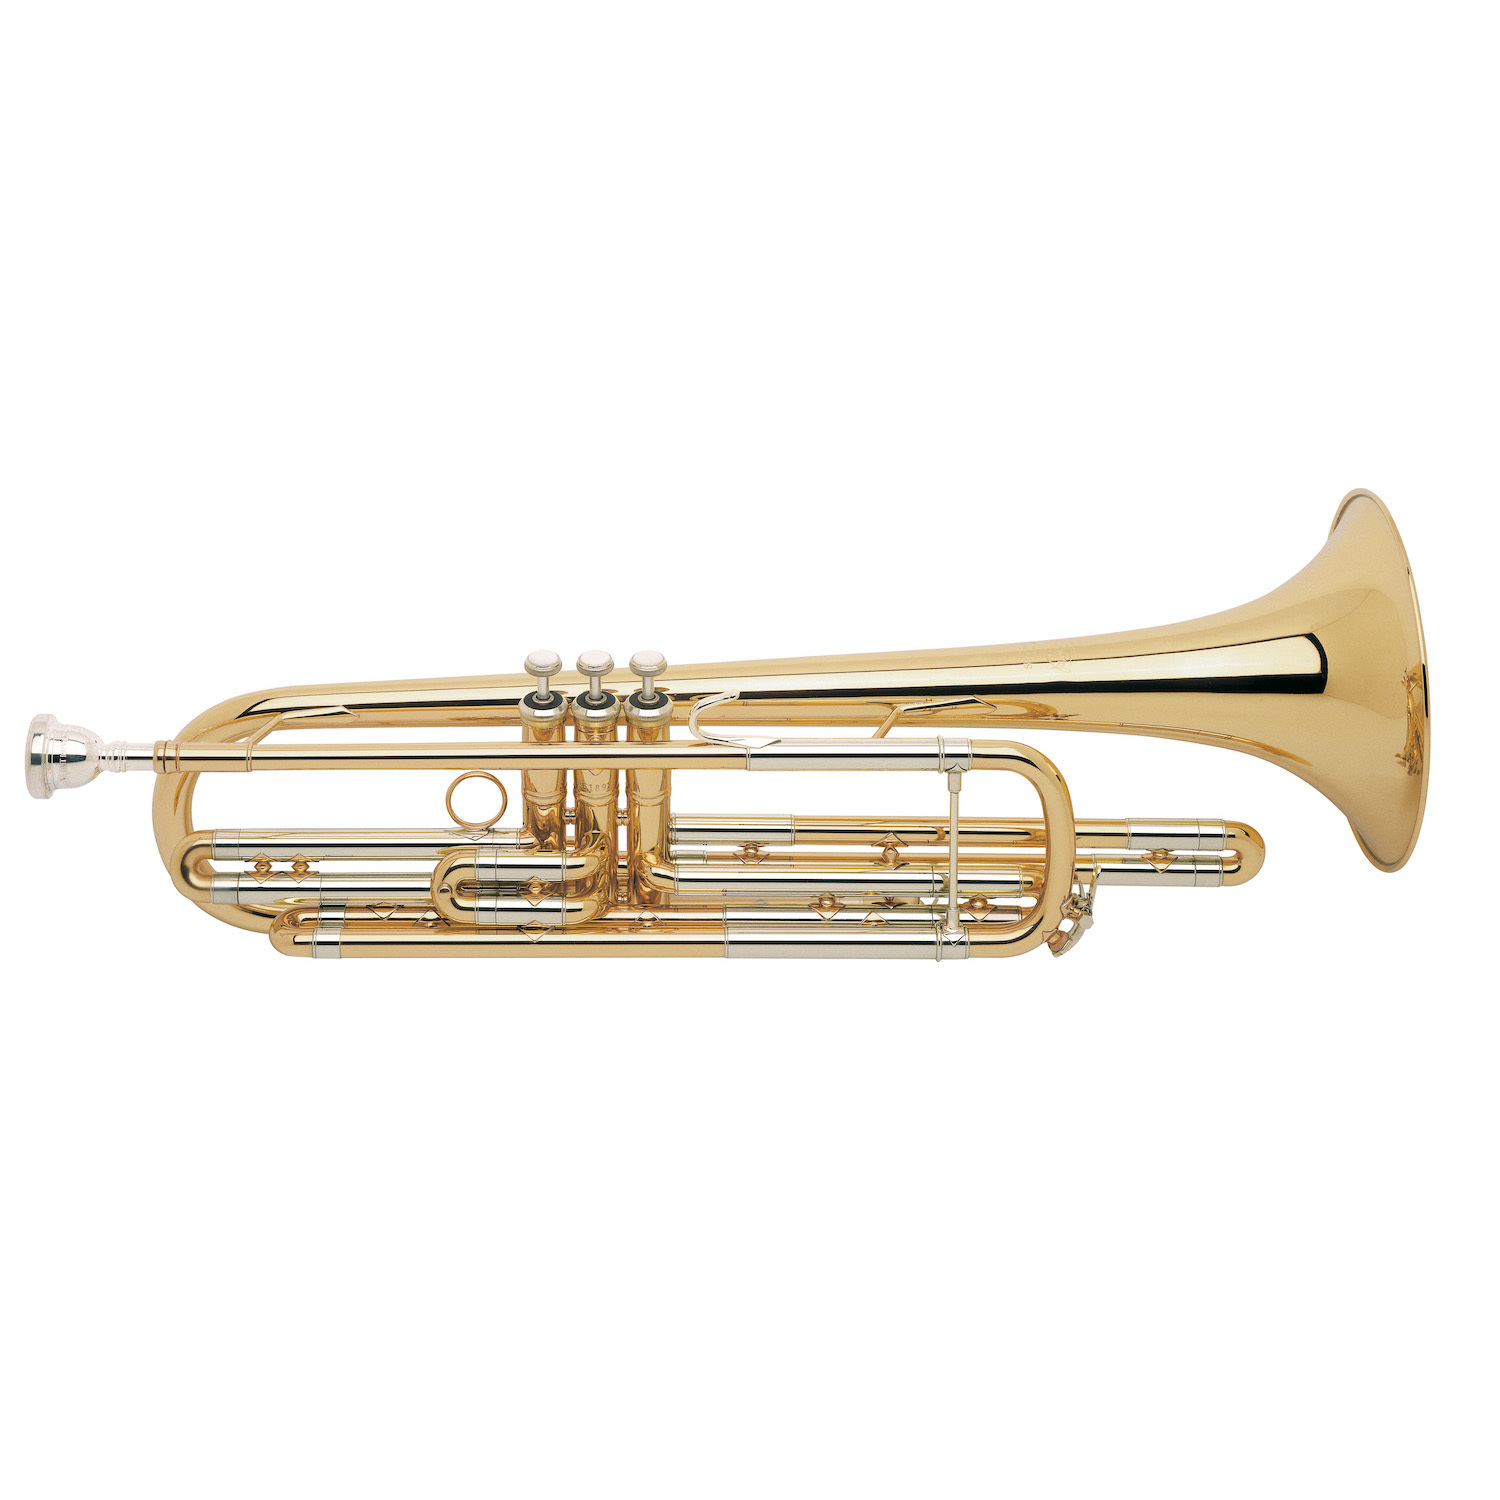 Bach Stradivarius Bass Trumpet - $250 INSTANT REBATE (Shown in Cart)